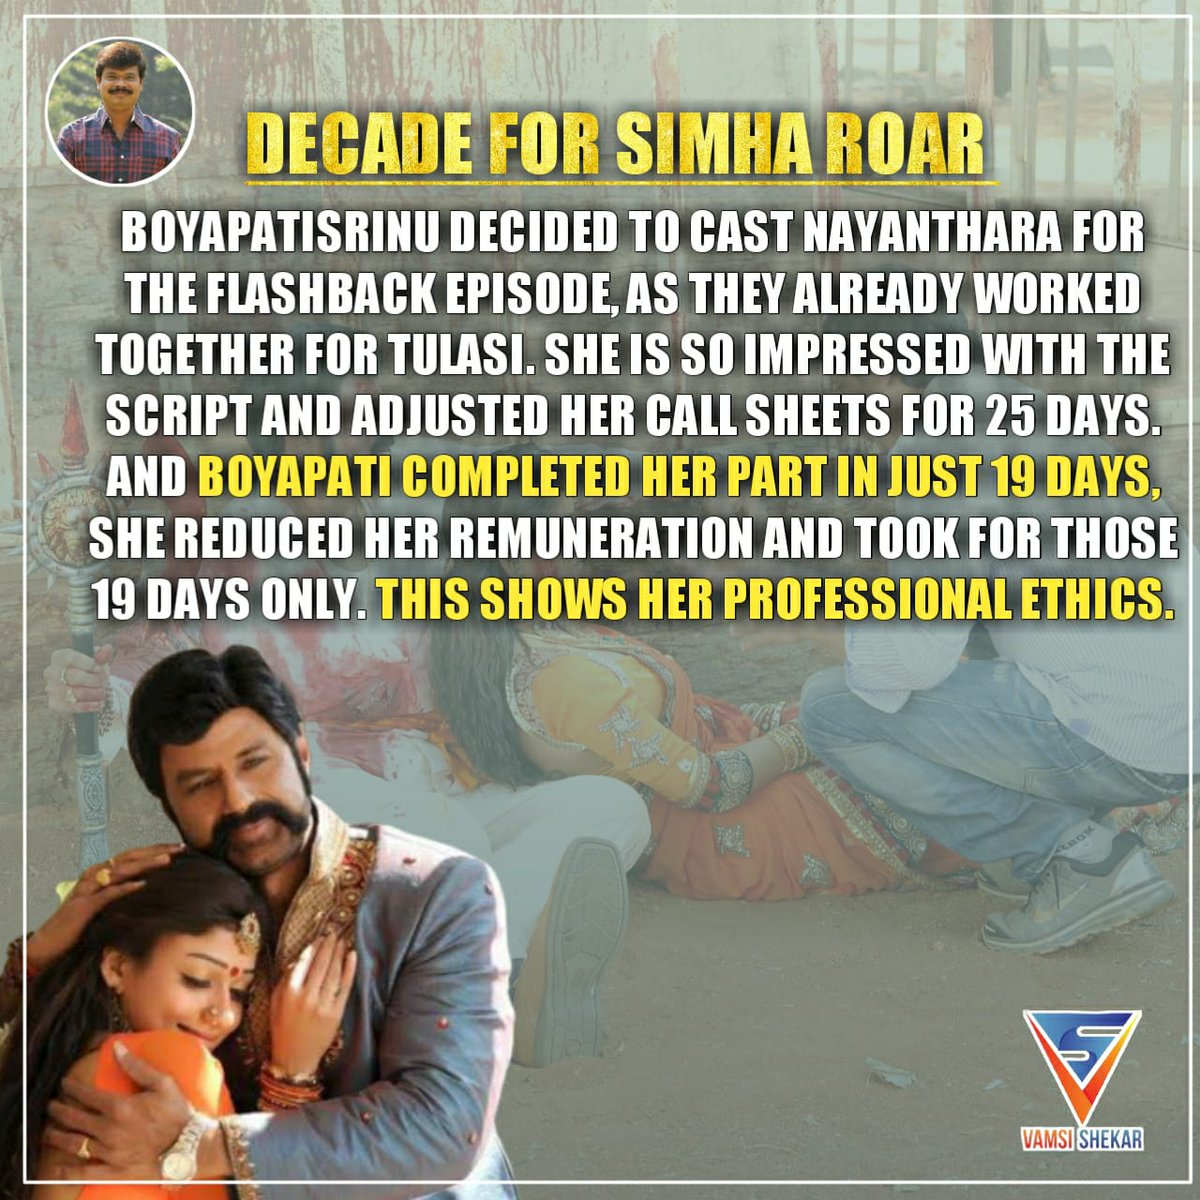 3. #Nayanthara took remuneration only for those 19 days. #Profesional  #DecadeForSimhaRoarpic.twitter.com/GeDjBTSaVA